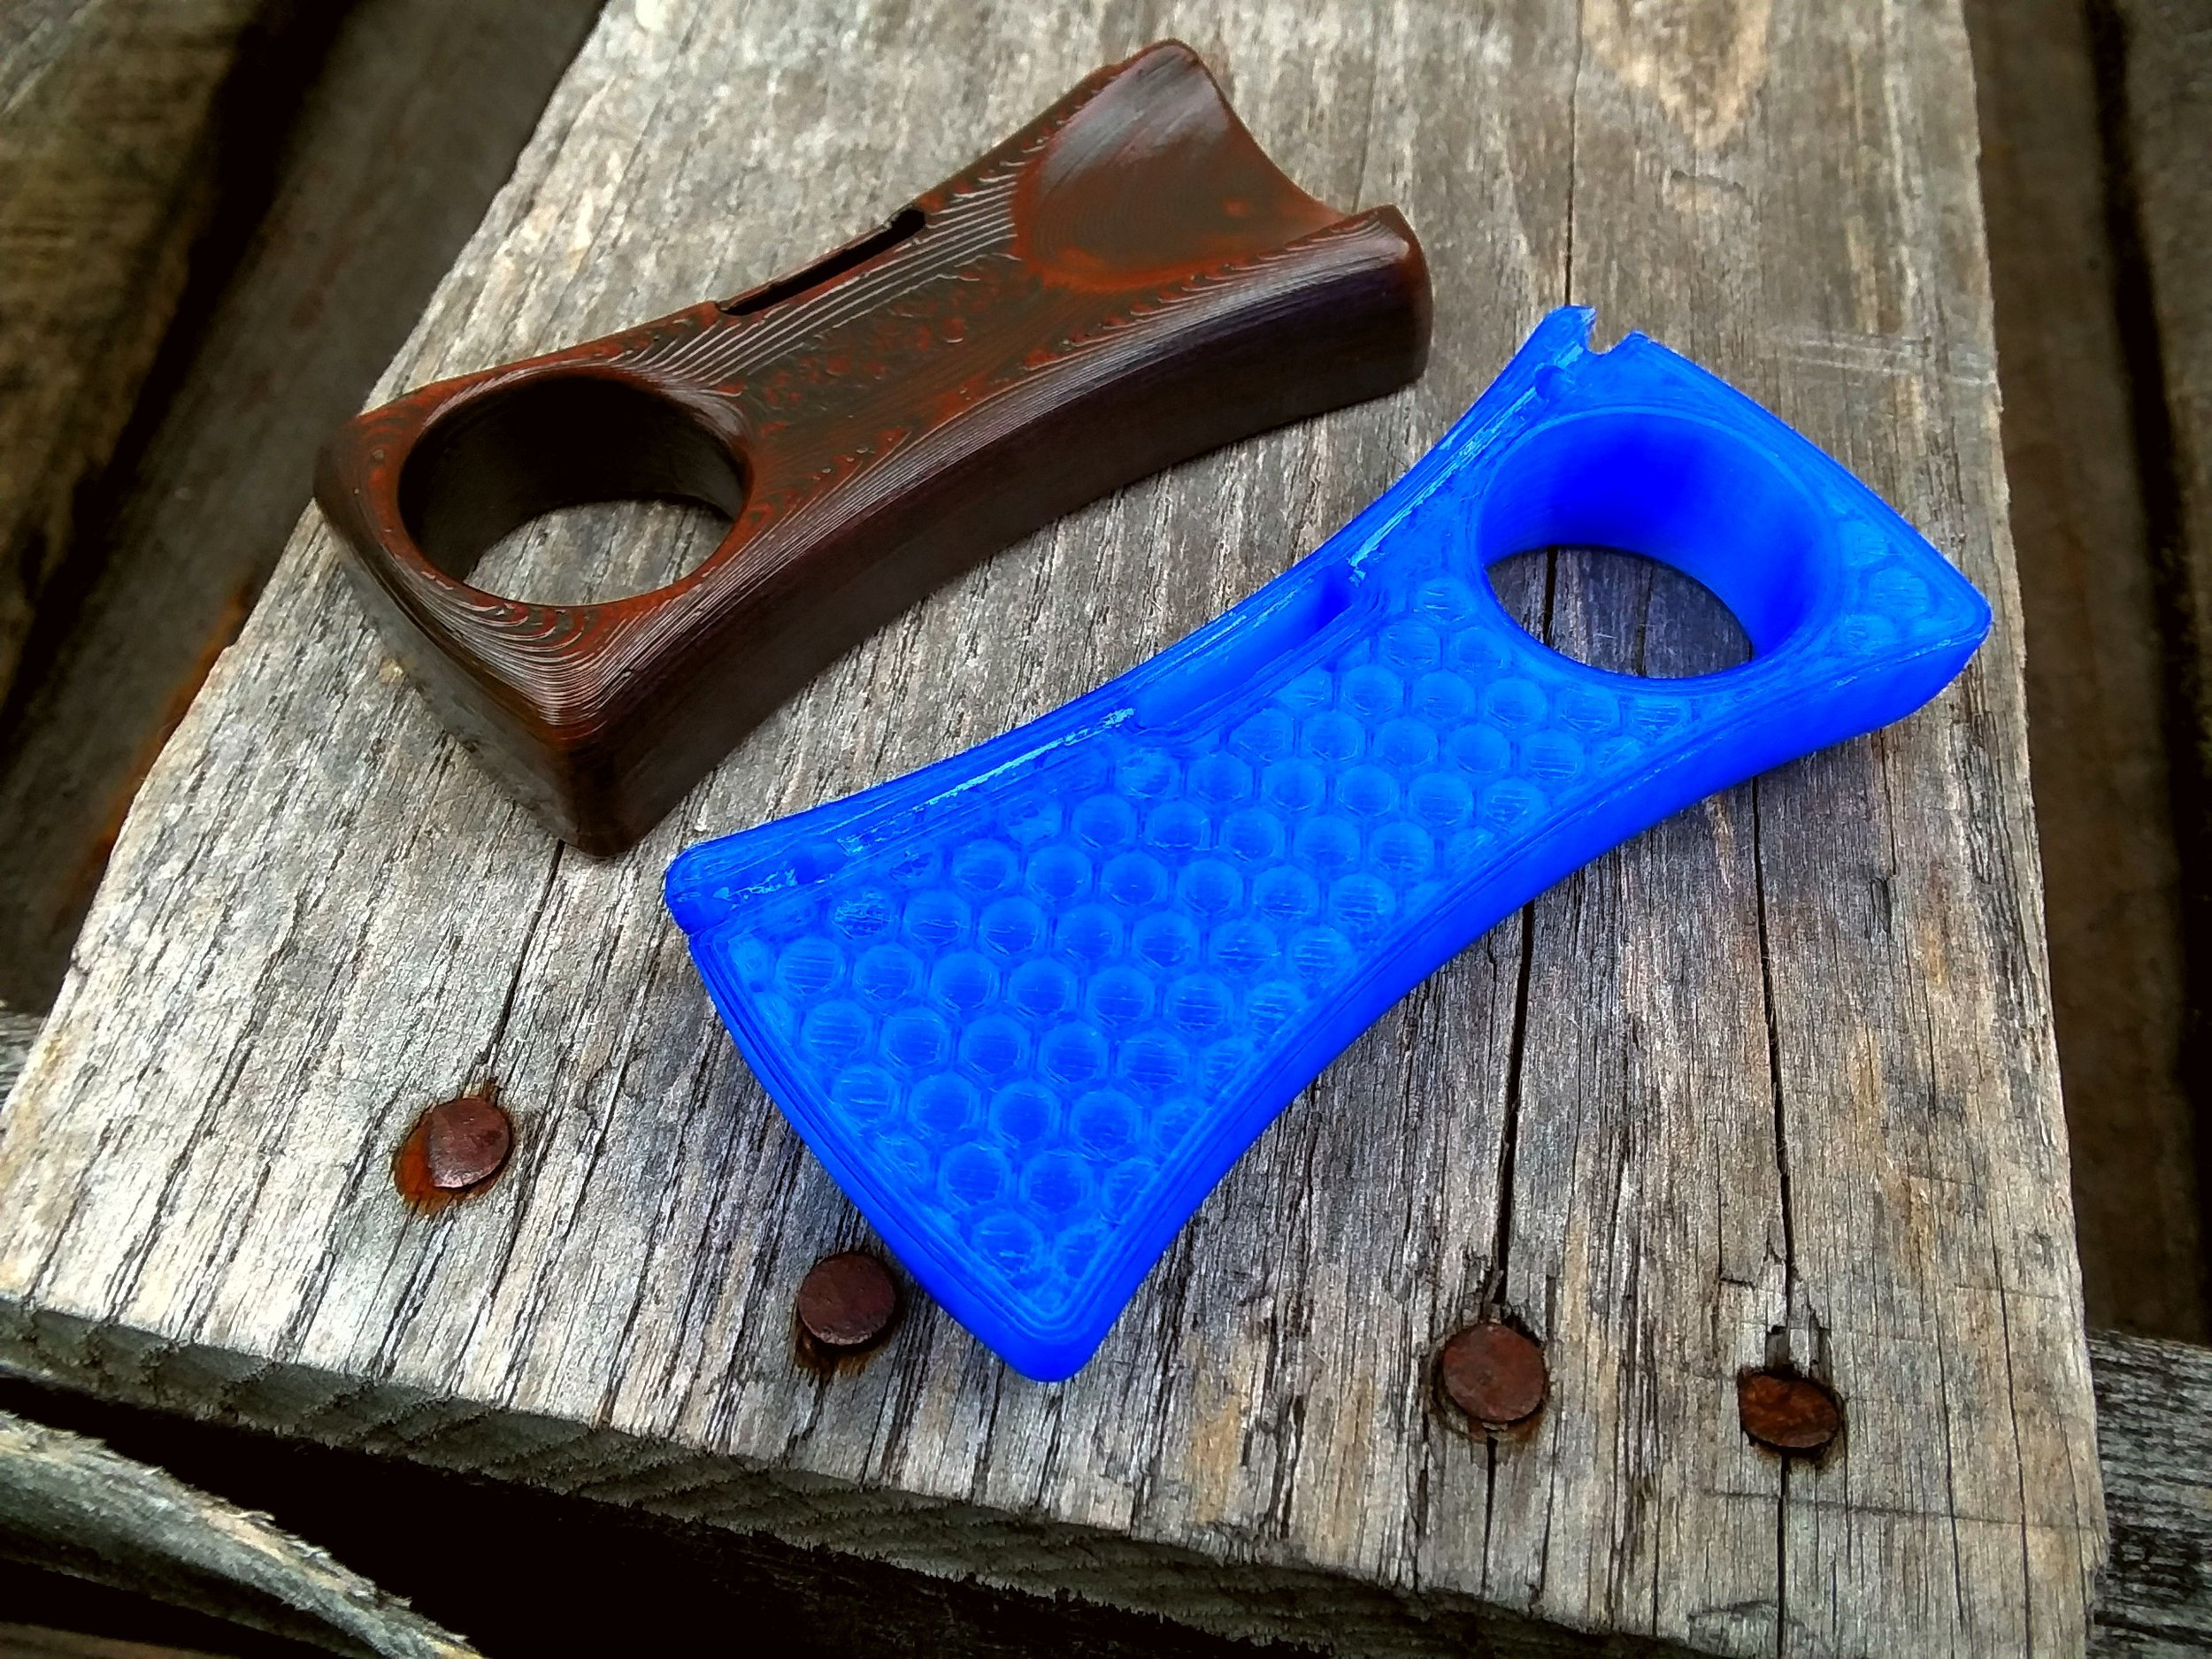 Our Weaver slingshot shown here in translucent blue (near) and graphite over copper (far)